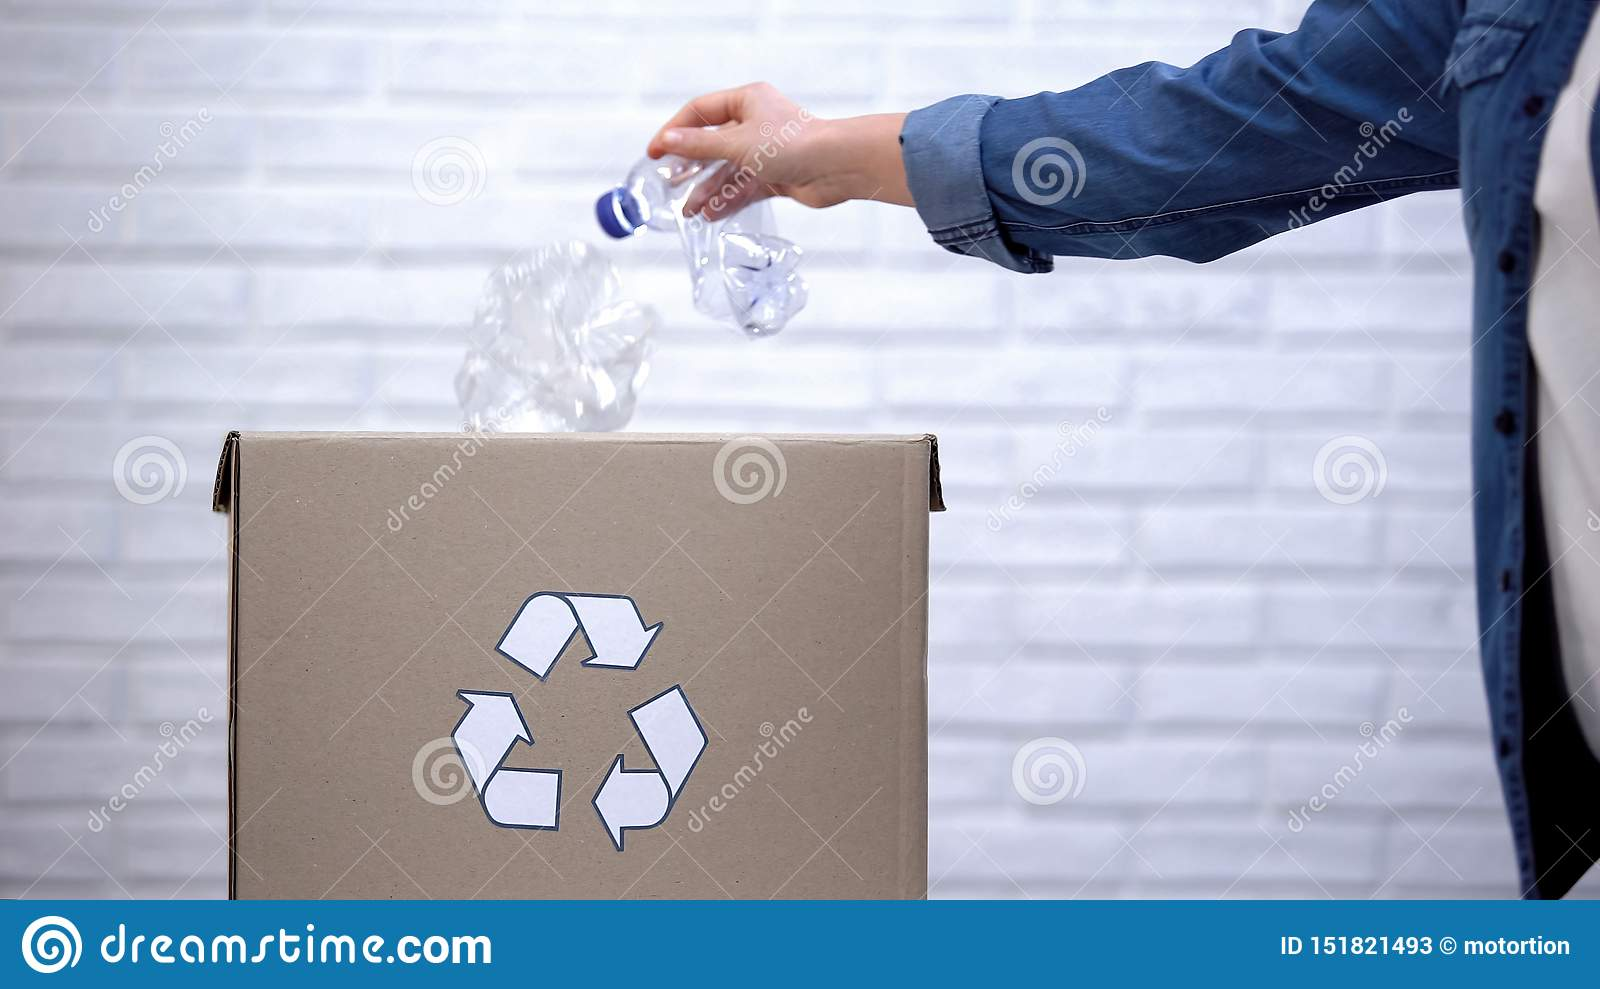 Person throwing plastic bottles into trash bin, sorting non-degradable waste